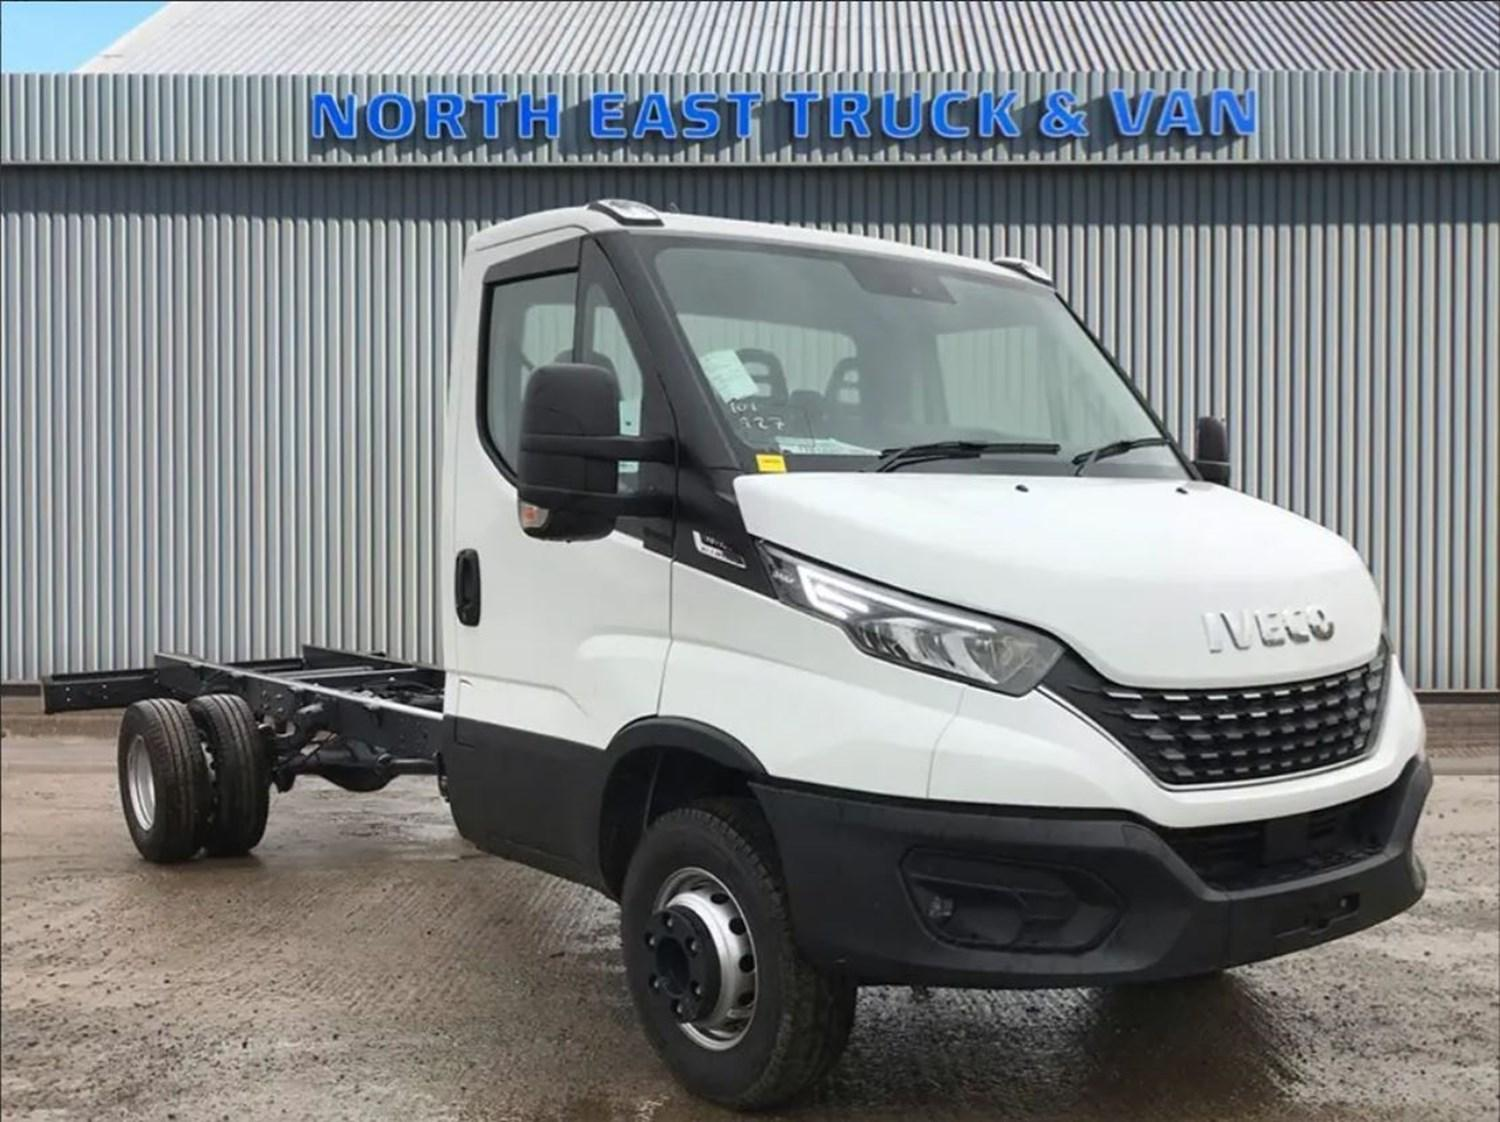 IVECO Daily 7t Chassis Cab